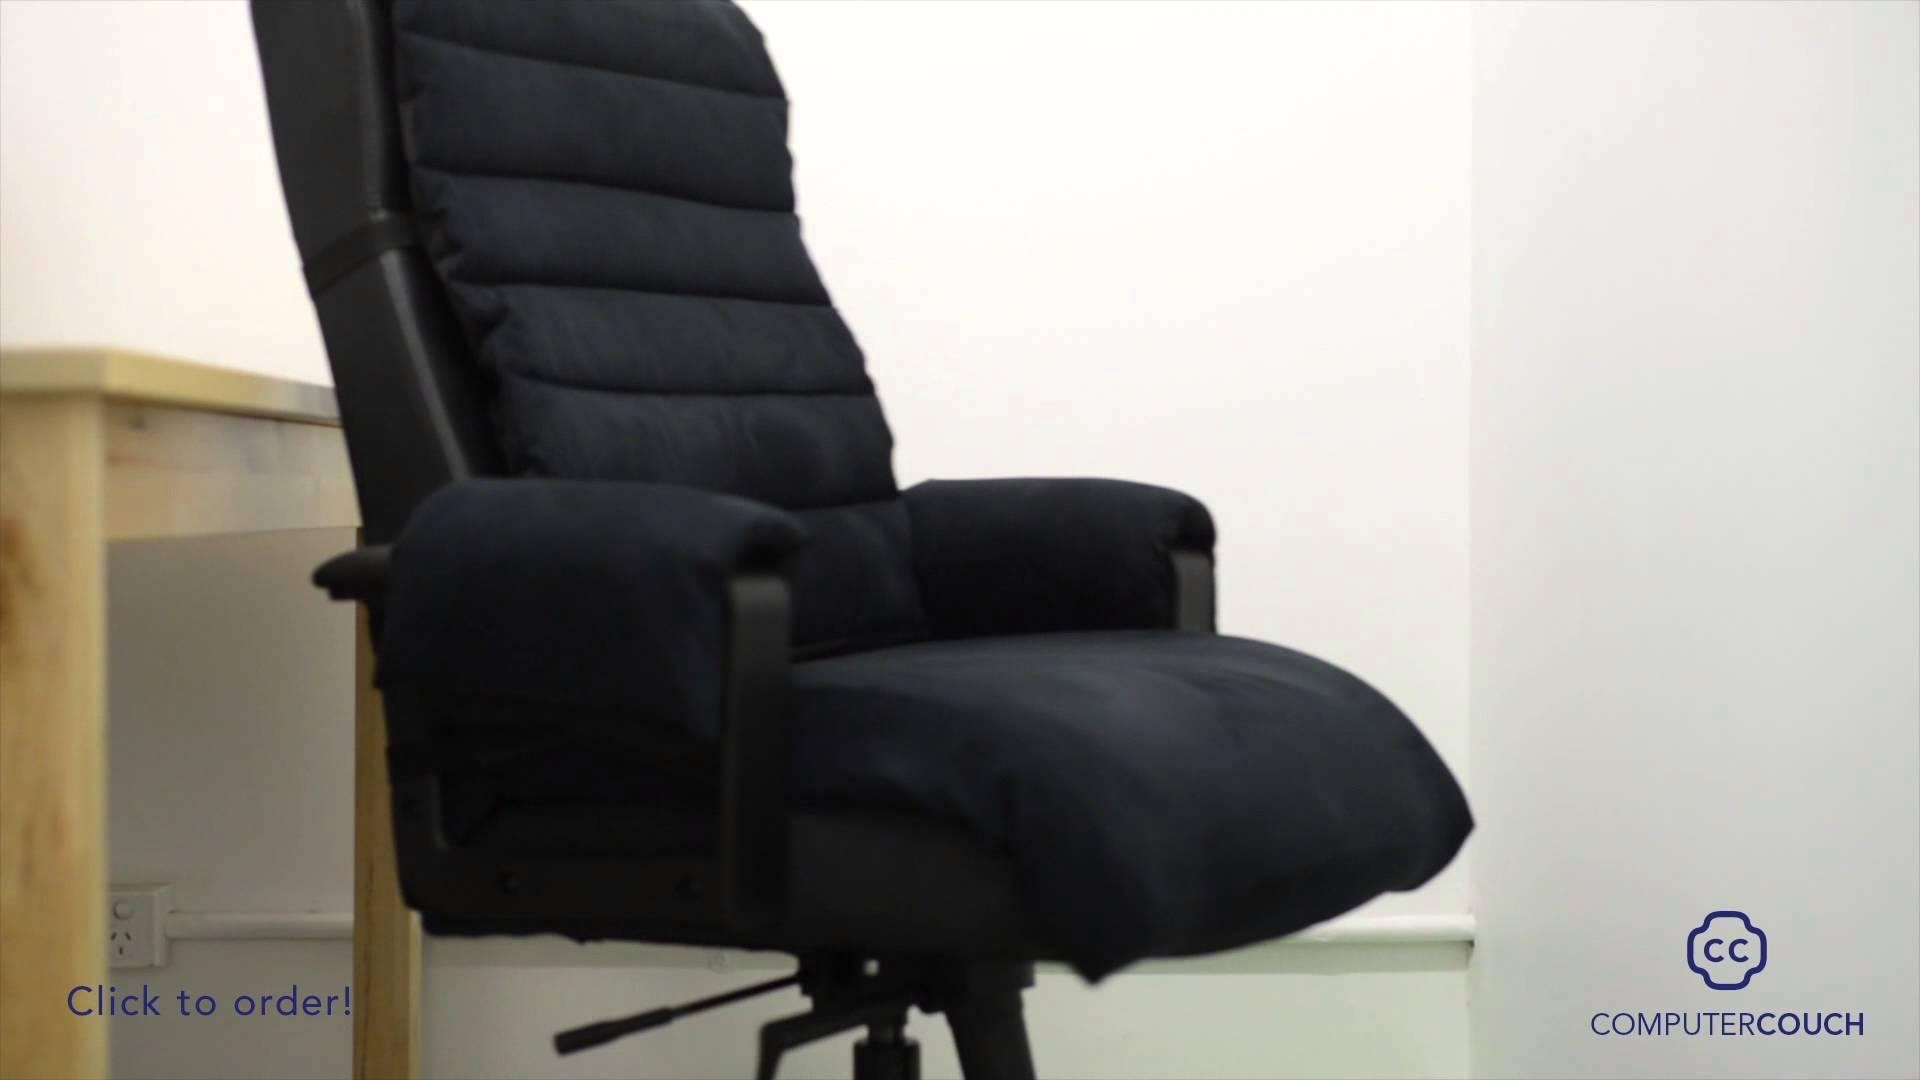 Office Sofa Chair 39 Ideas About Office Sofa Chair – Cryomats With Regard To Office Sofas And Chairs (View 12 of 20)